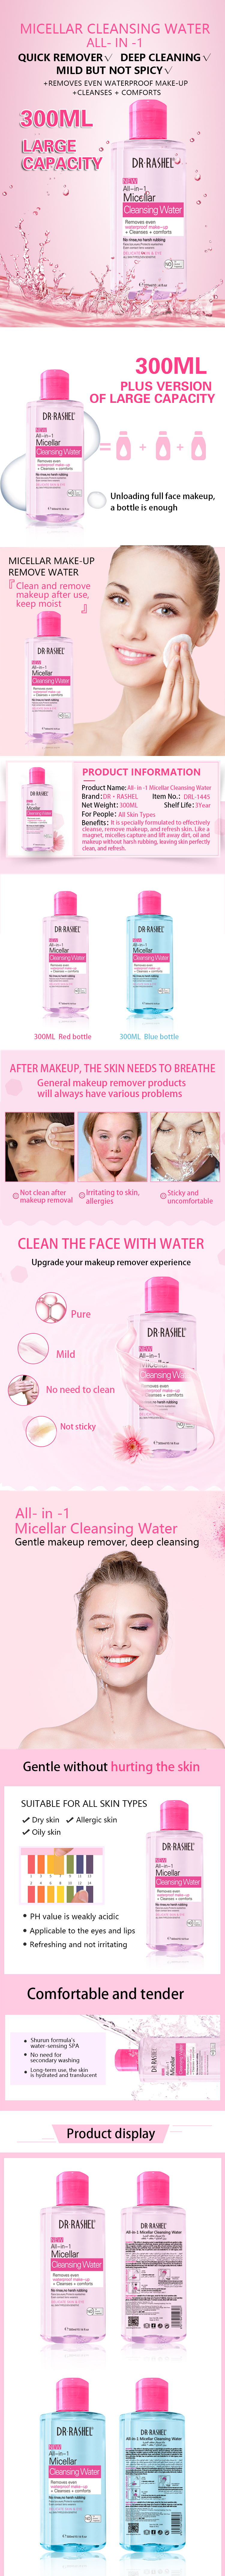 DR.RASHEL All in 1 Micellar Cleansing Water Remove Even Cleanse Comfort Waterproof Makeup Remover